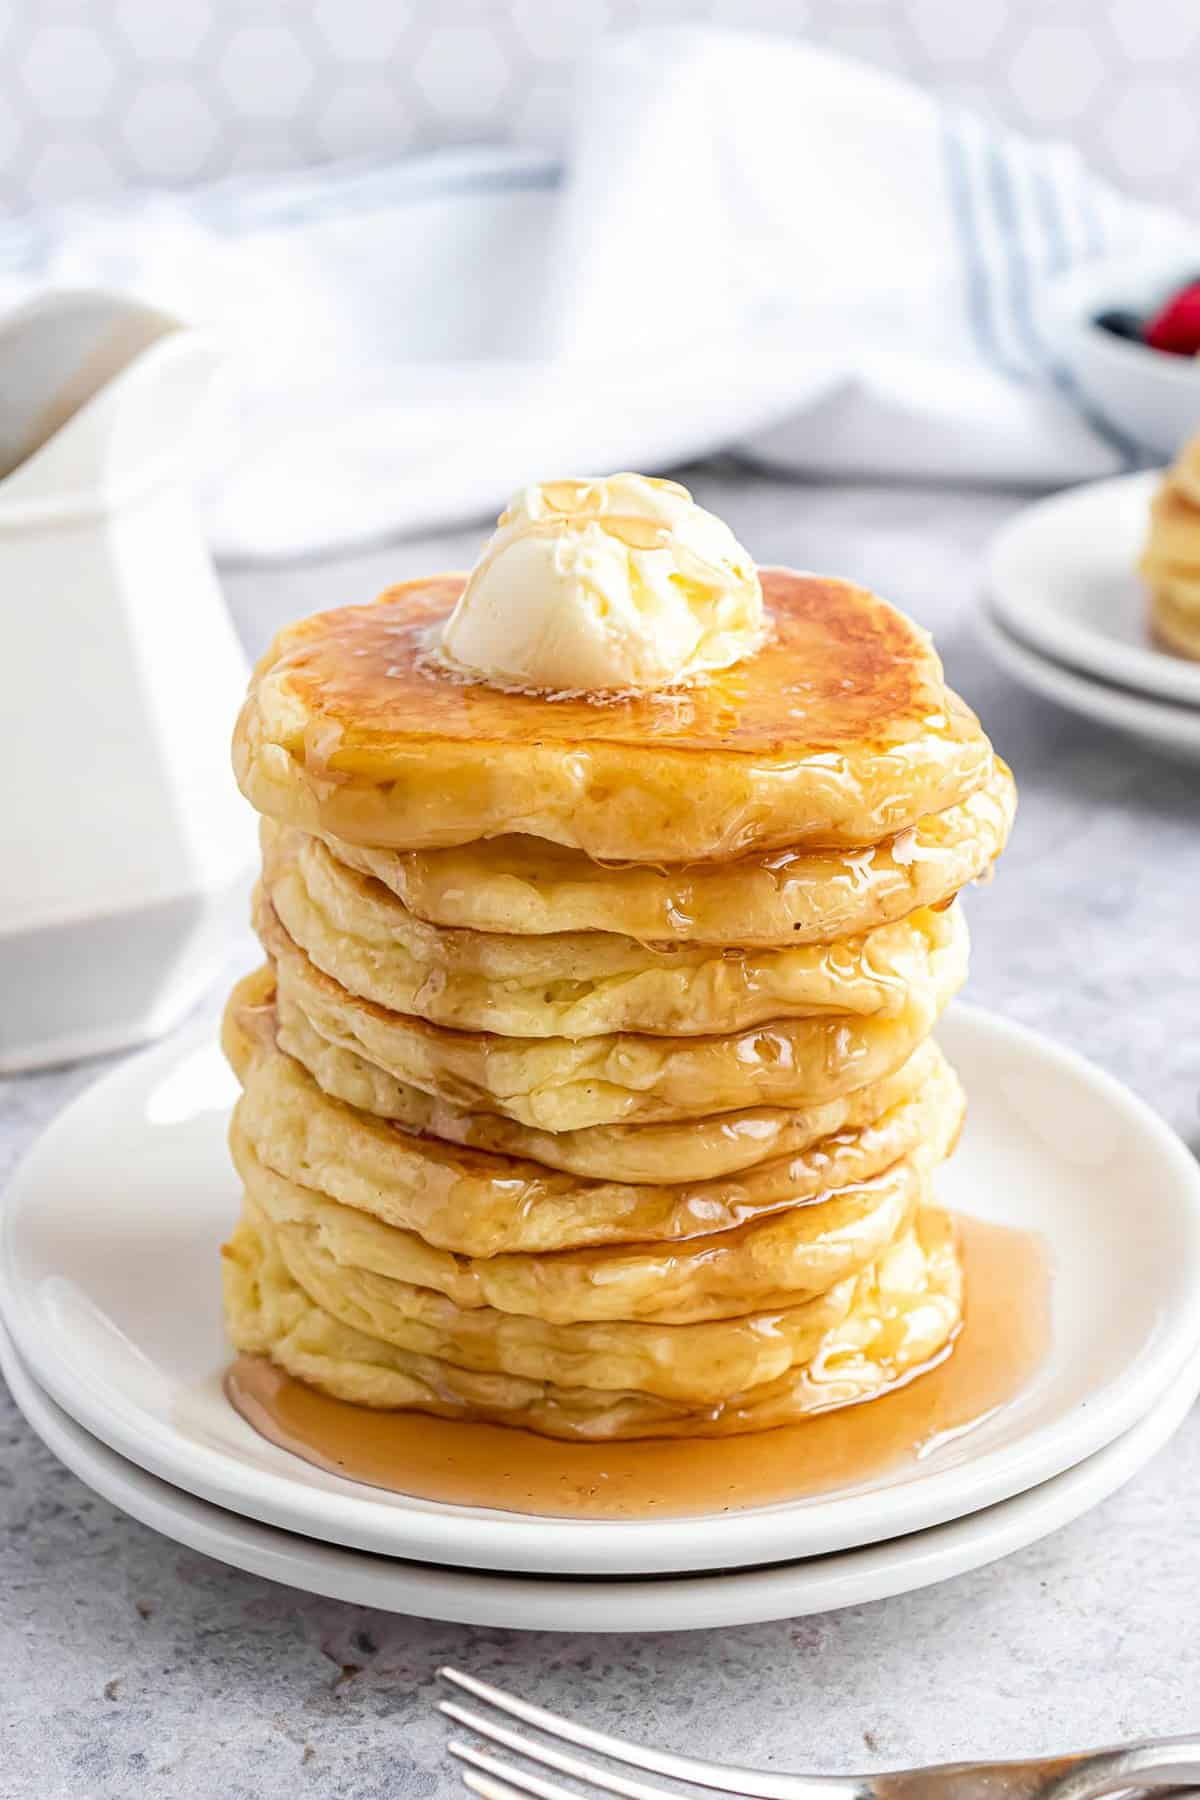 Tall stack of pancakes on a white plate, with butter and syrup.